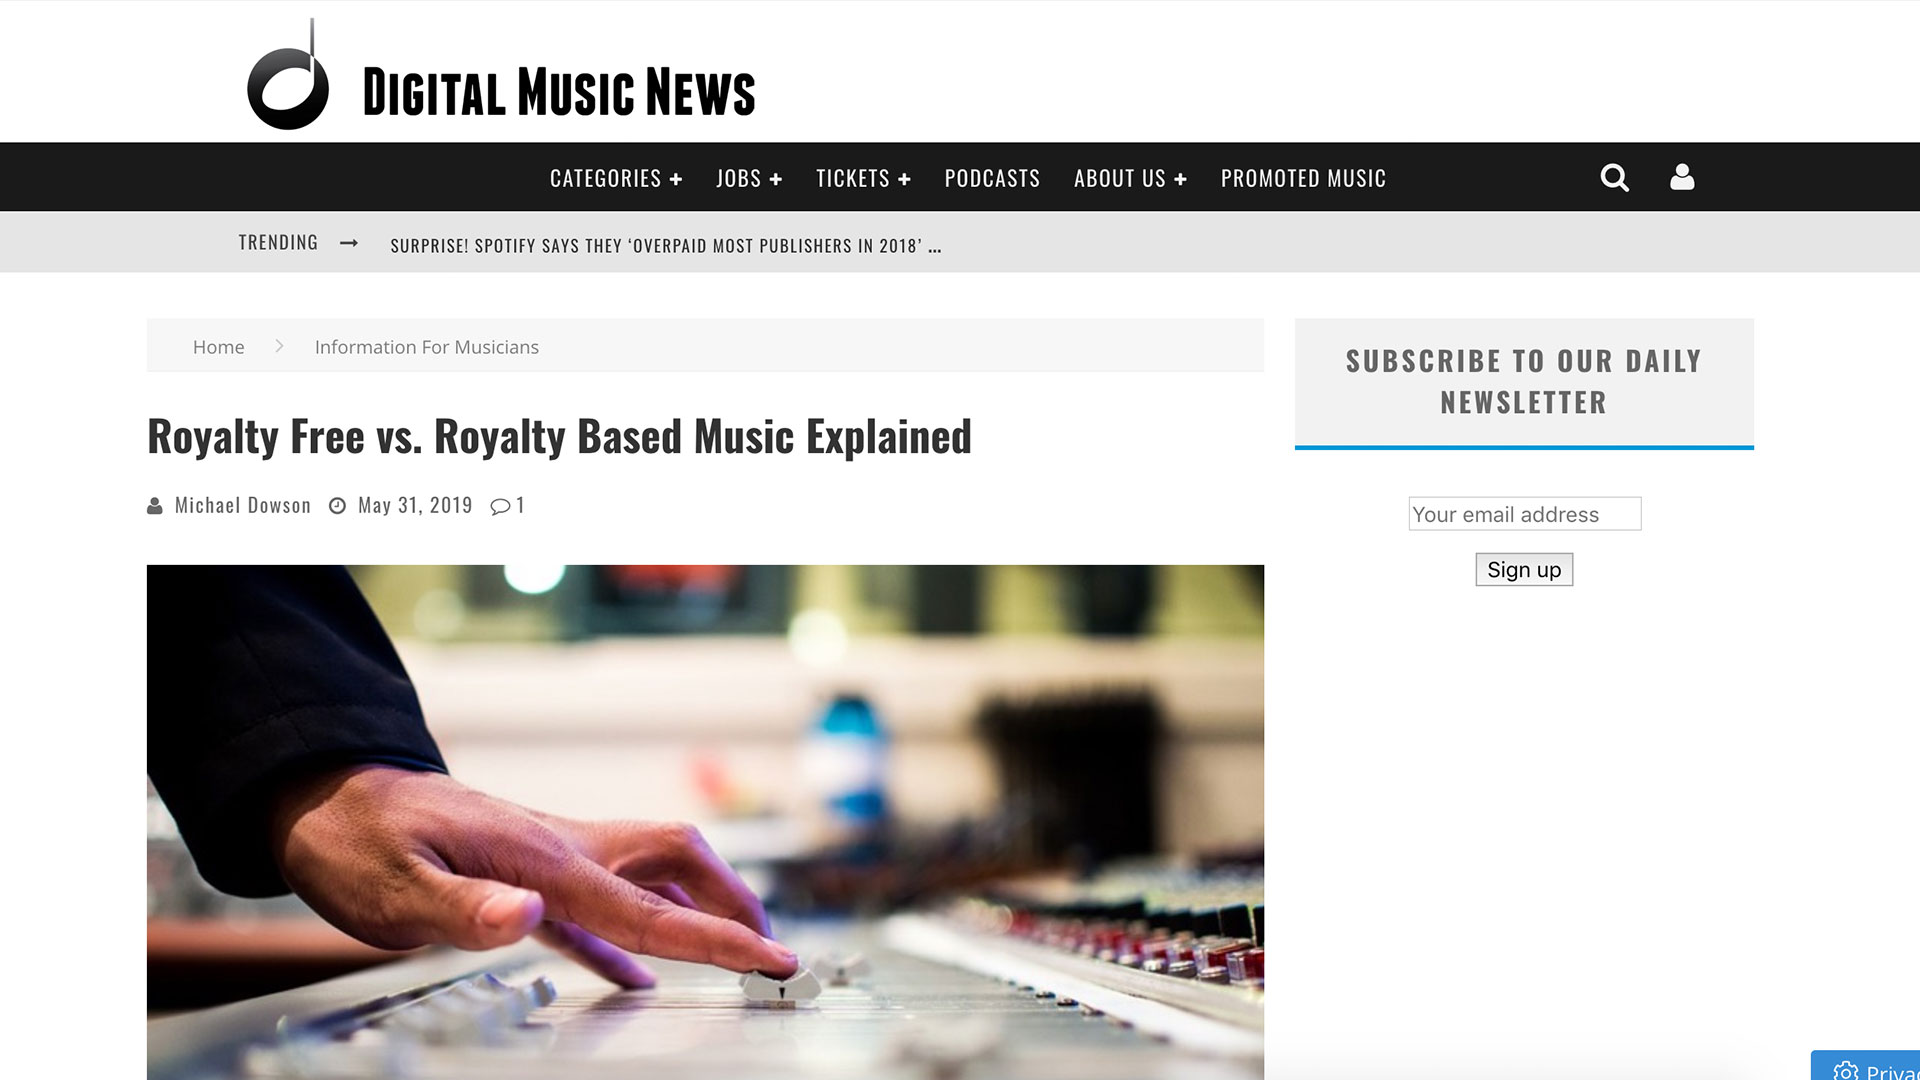 Fairness Rocks News Royalty Free vs. Royalty Based Music Explained